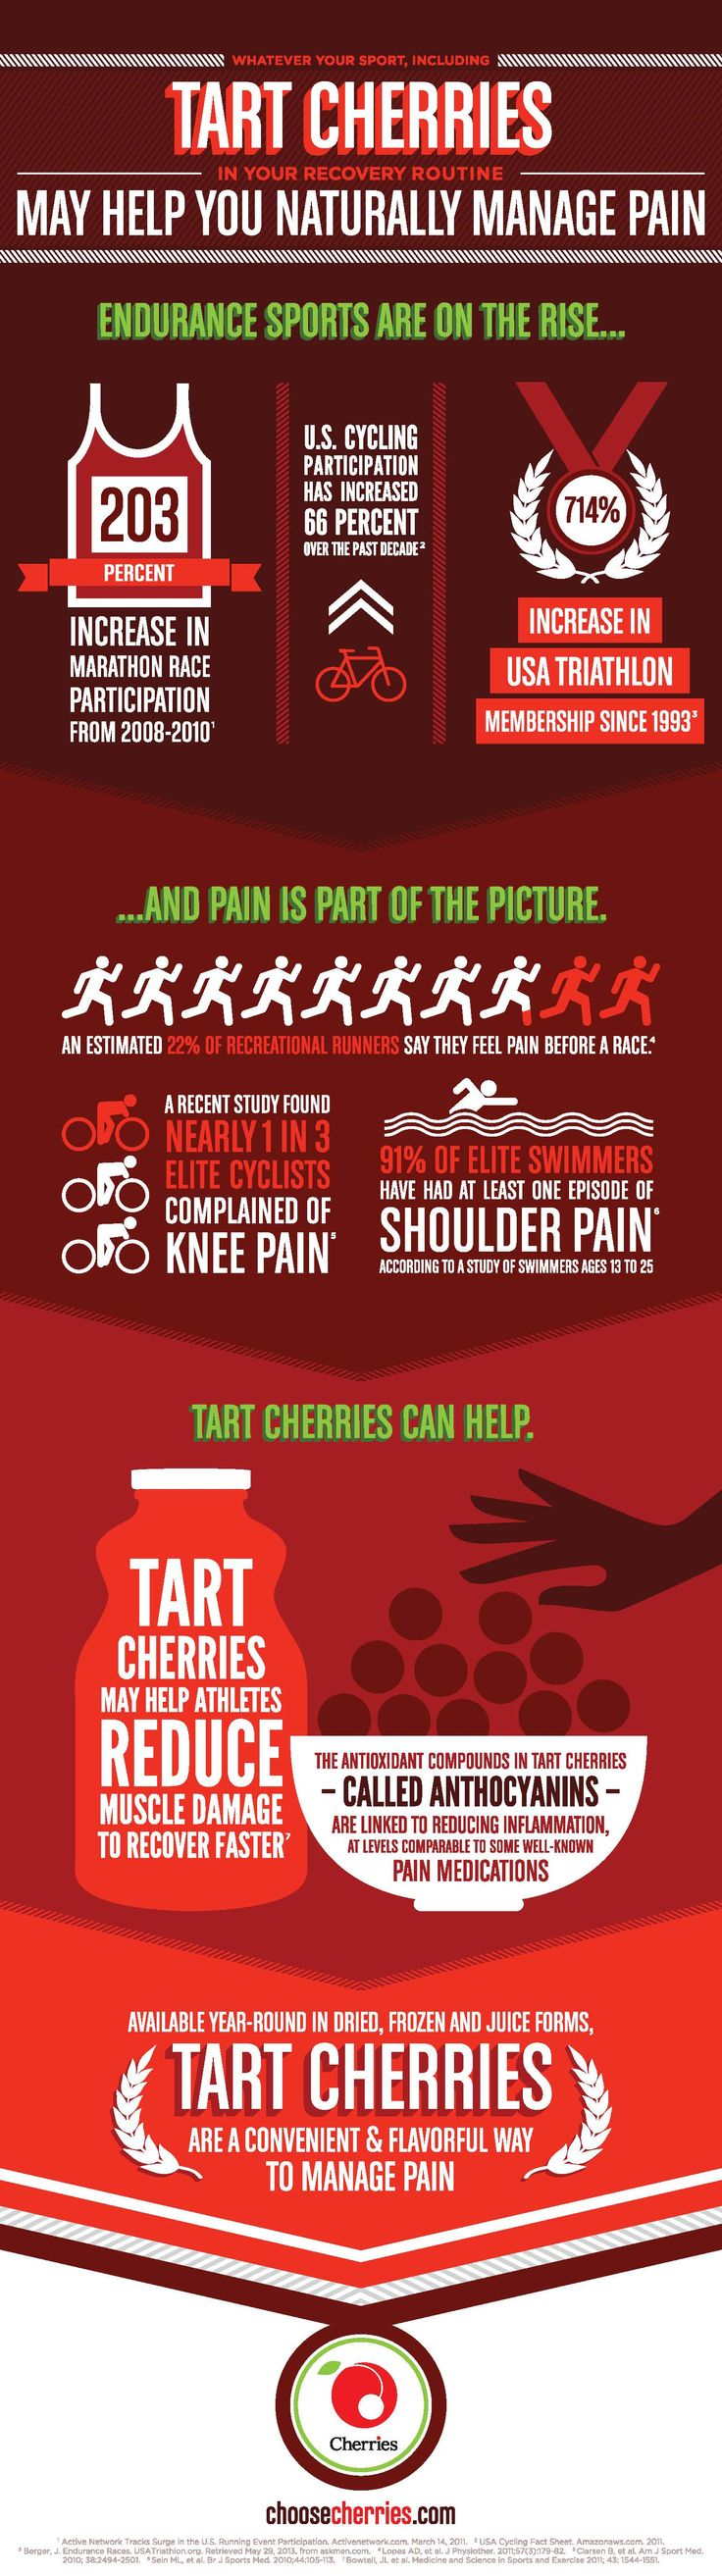 #infographic - the benefits of tart cherries for recovery and pain management. Take the 7-Day Tart Cherry Juice Challenge! #RecoverWithRed